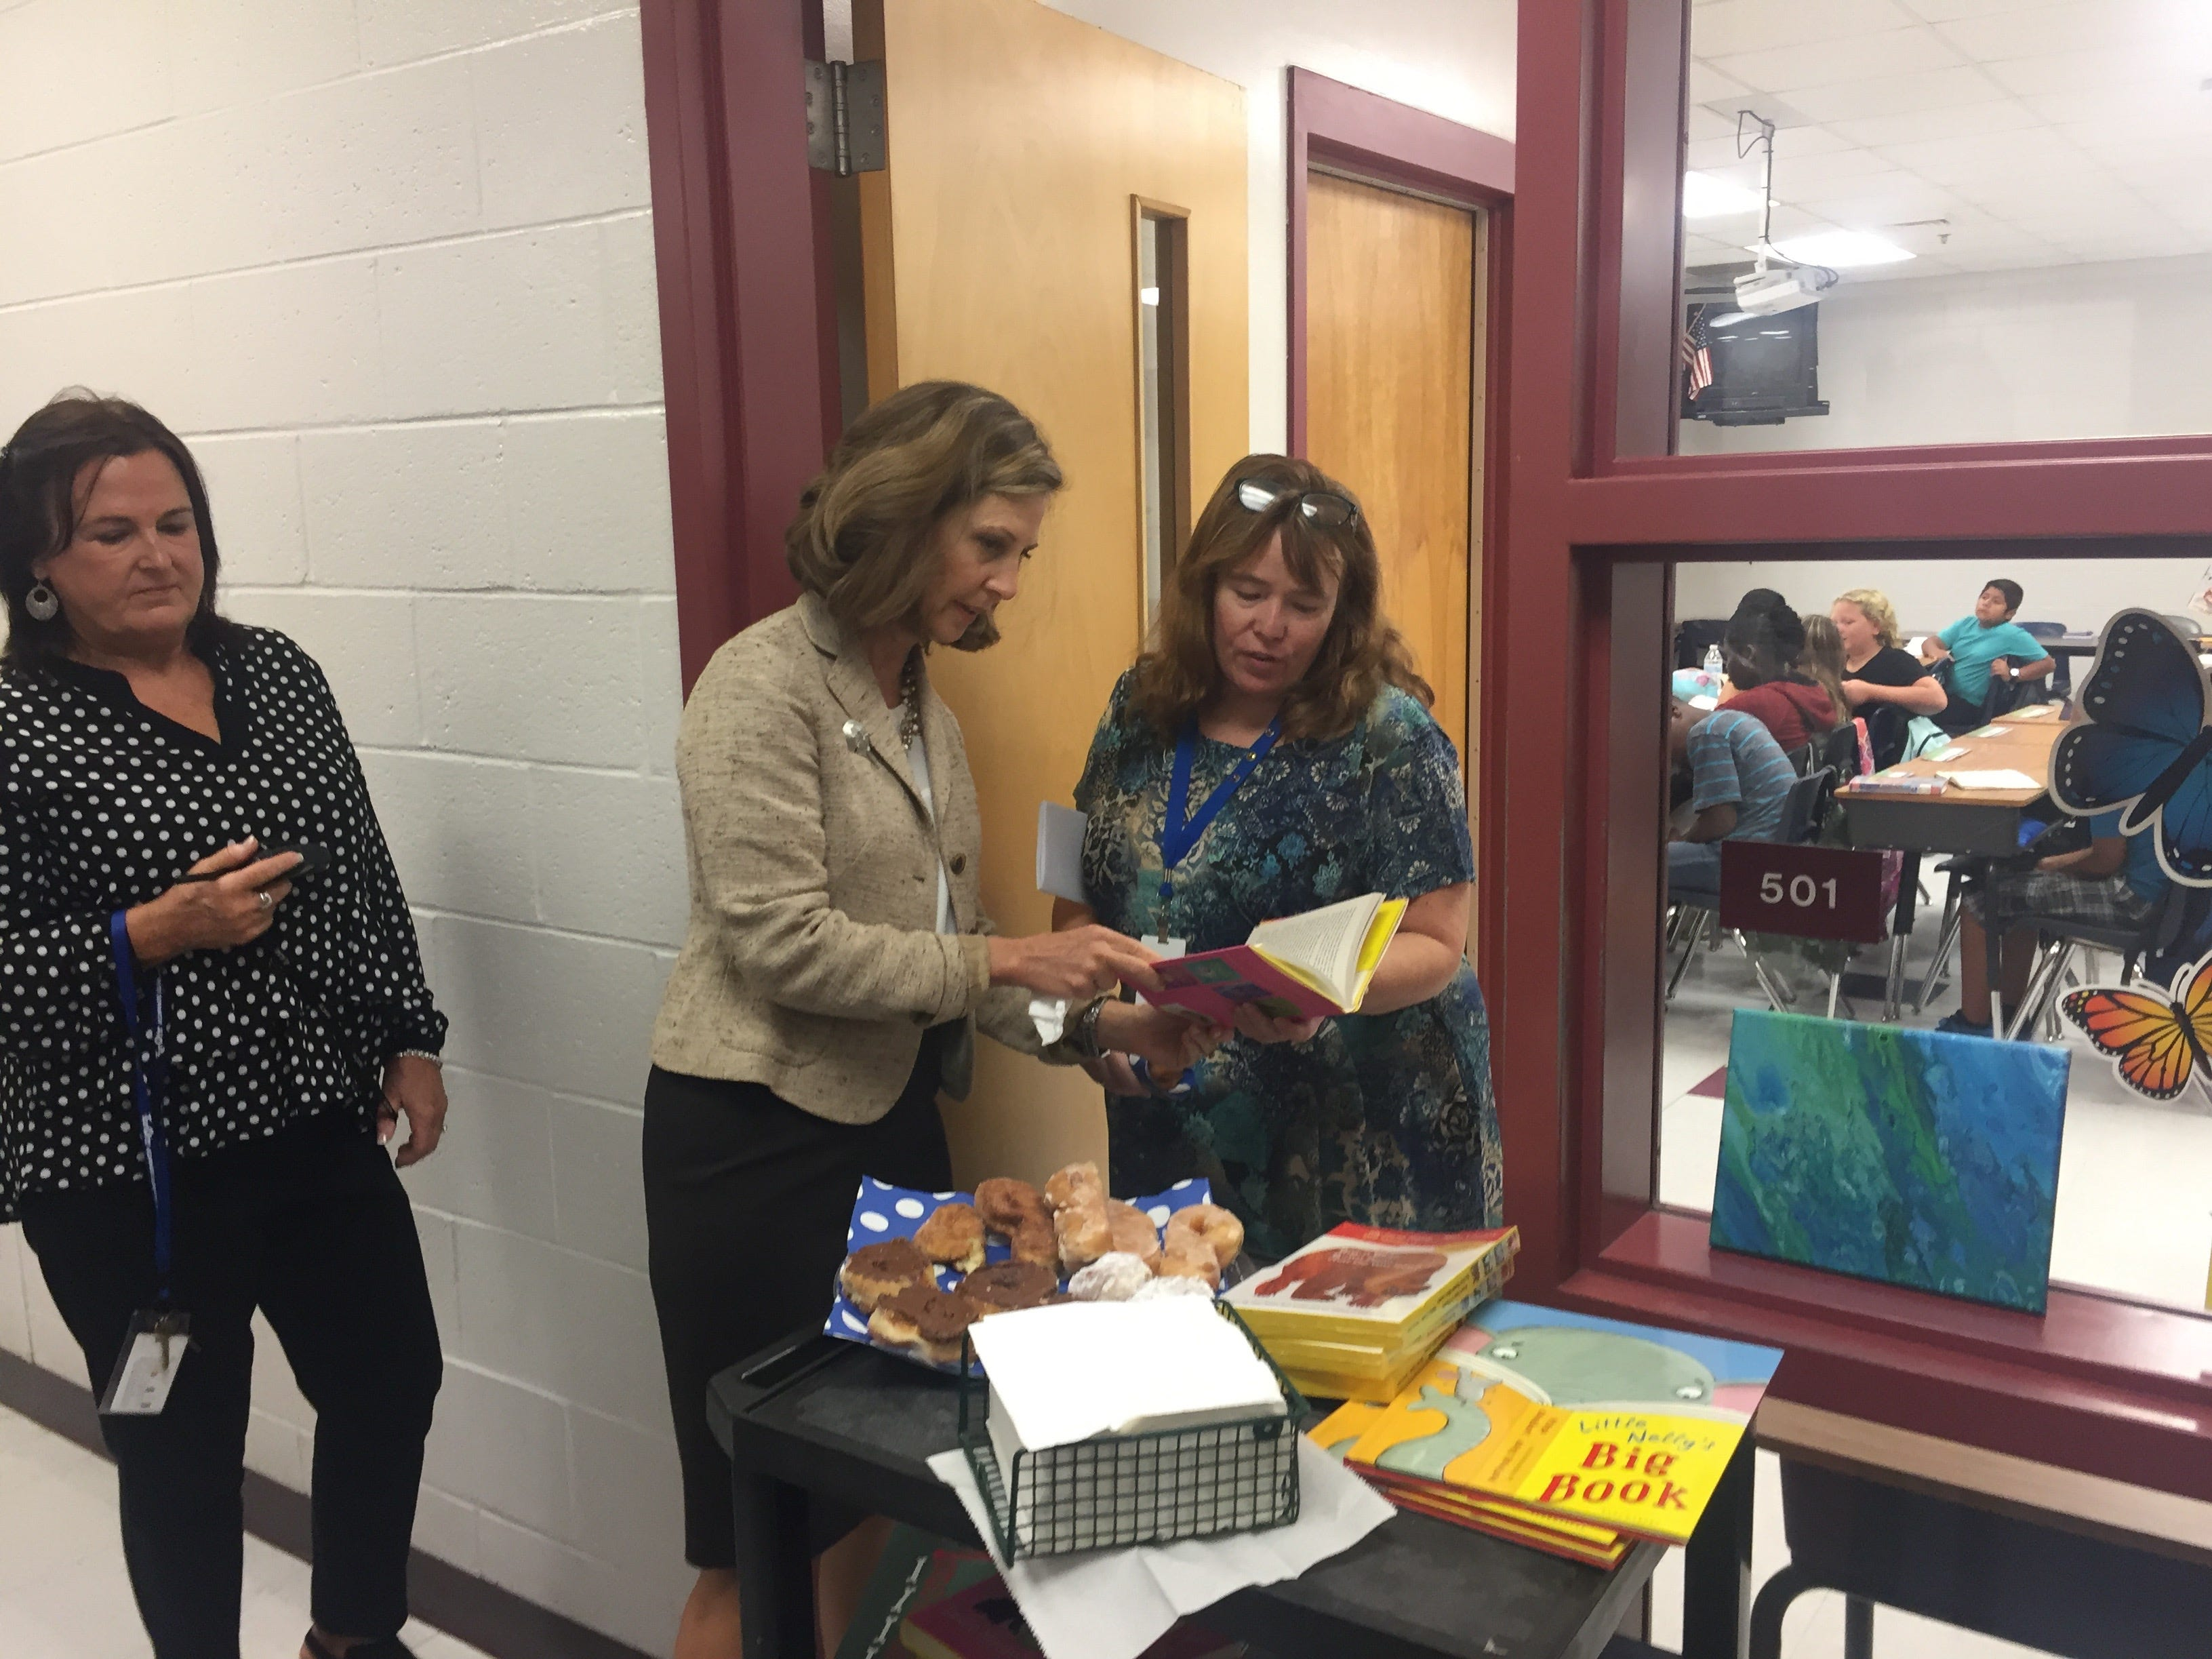 Virginia First Lady Pamela Northam shows a book to teacher Diana Kio during a visit at Accawmacke Elementary School in Daugherty, Virginia on Monday, Sept. 20, 2018.